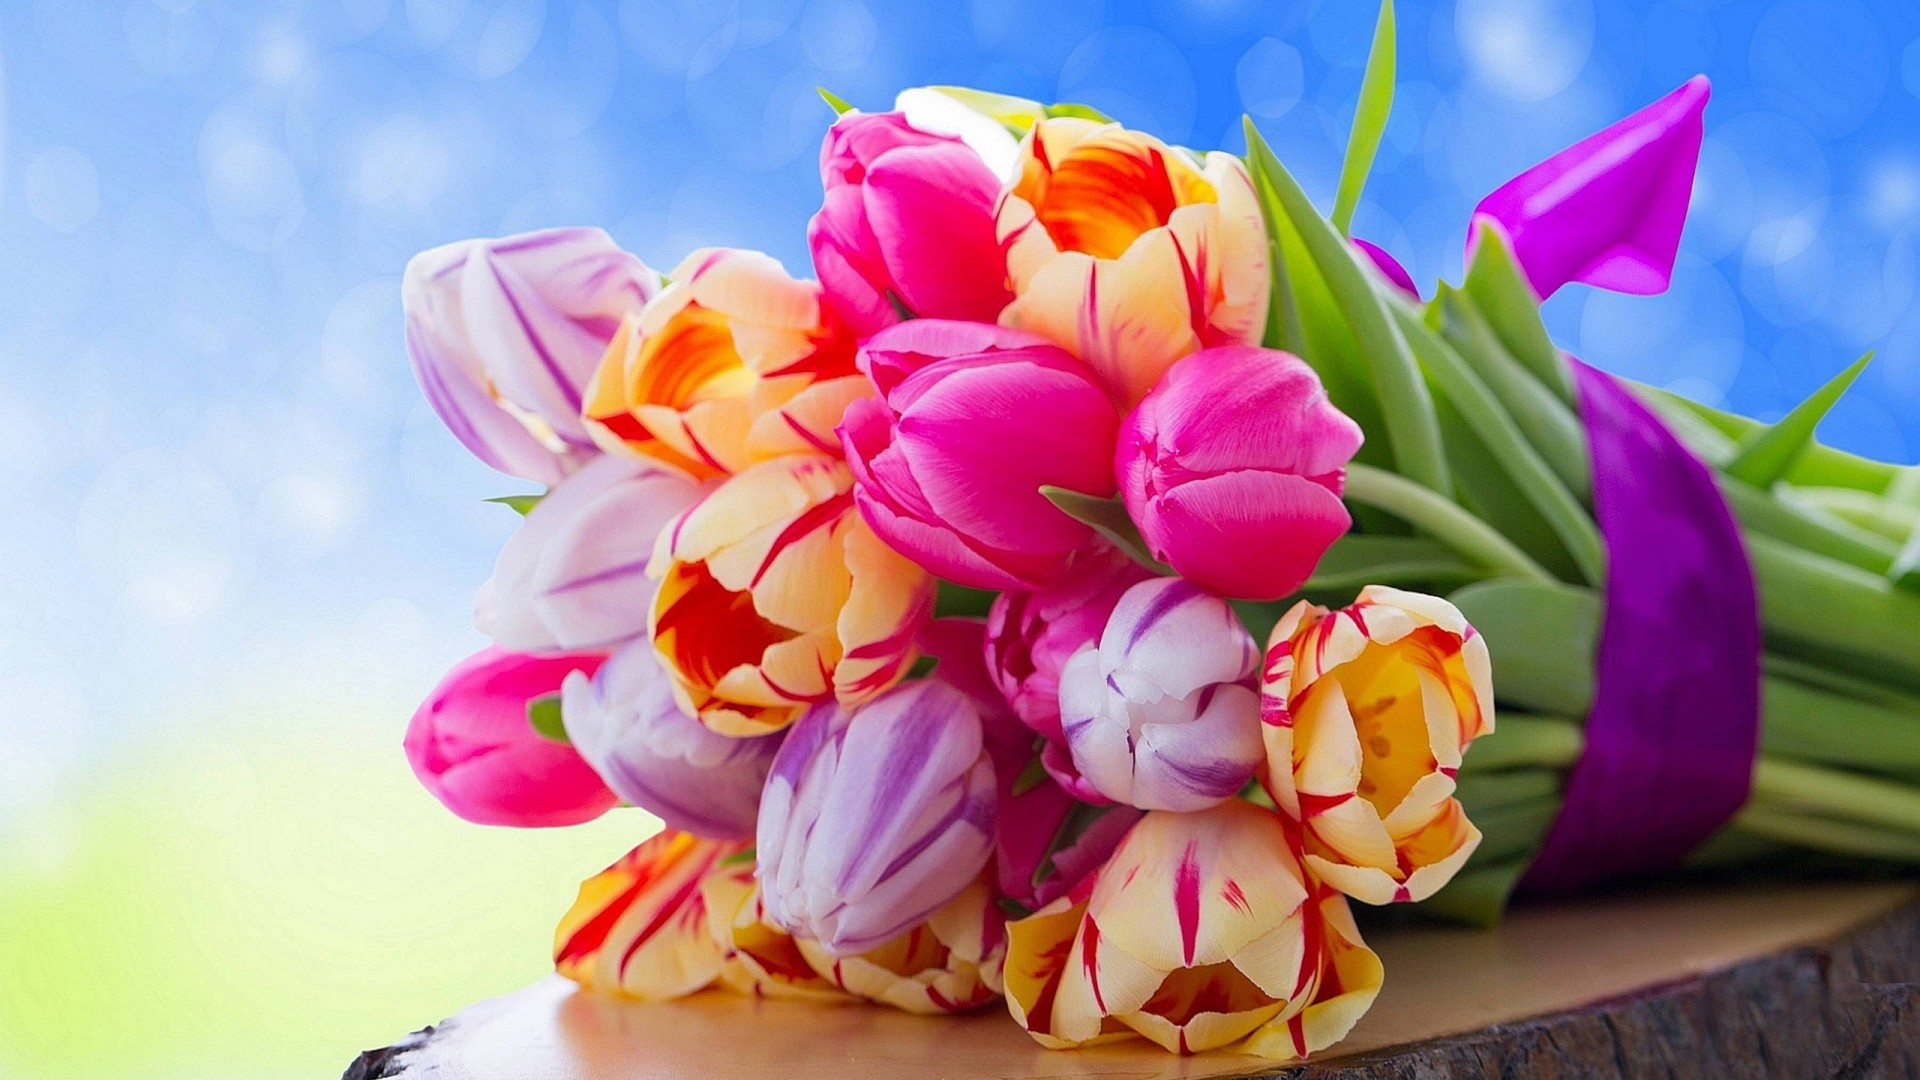 Florists Online Florists Uk Flowers Online Send Flowers Bunches